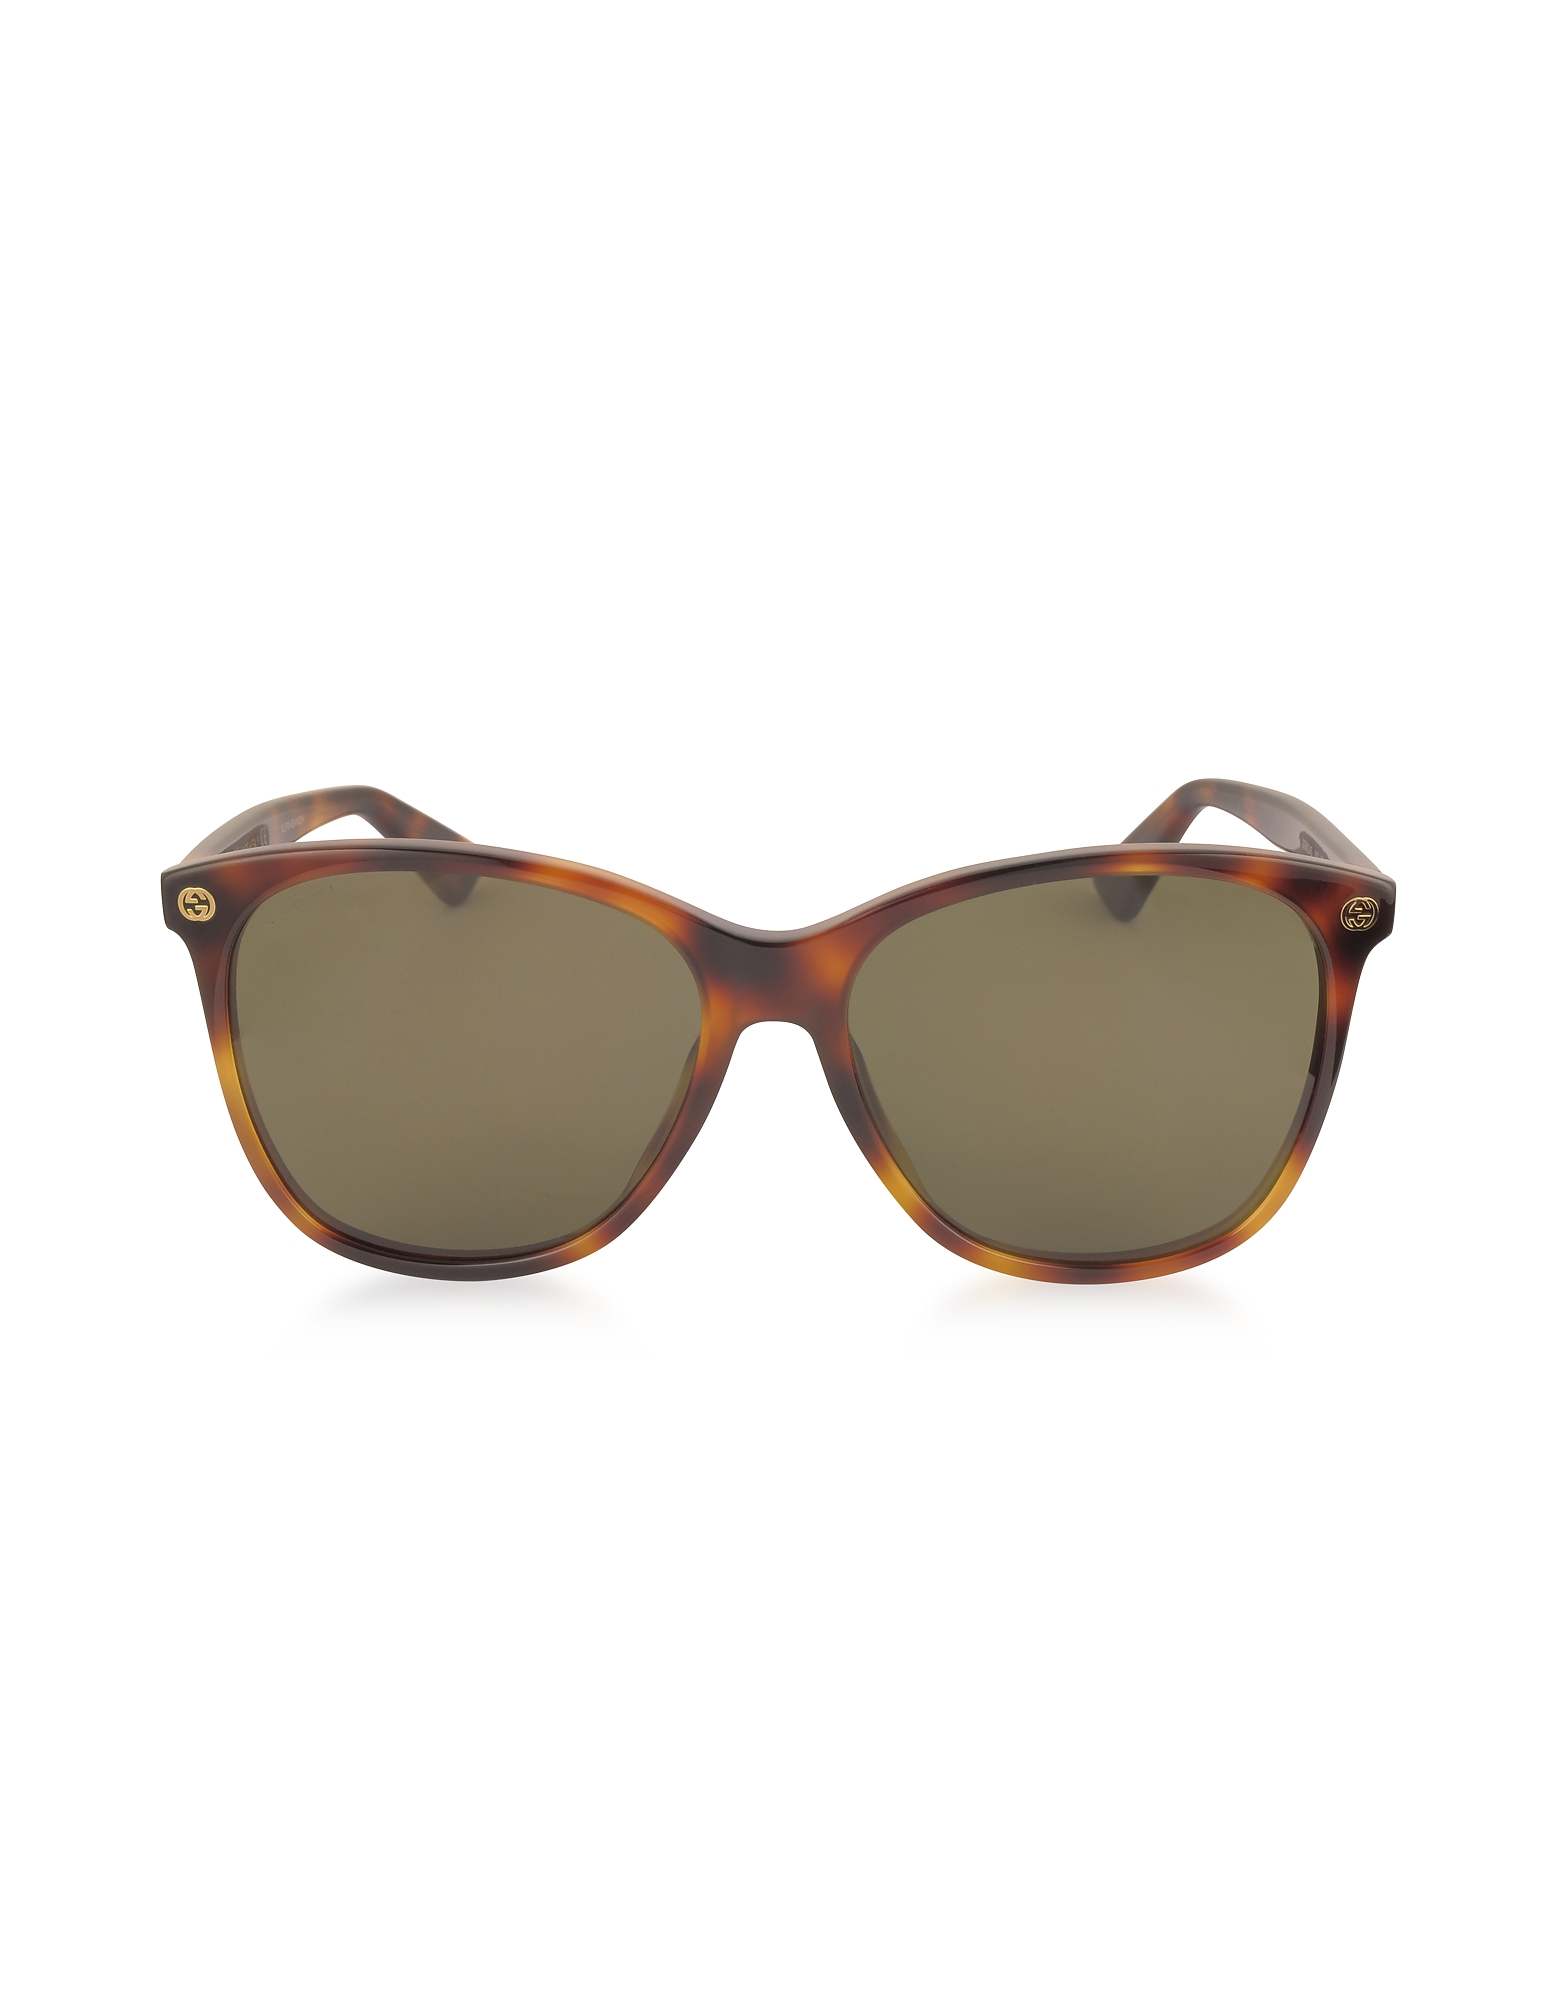 Gucci Designer Sunglasses, GG0024S Acetate Round Oversized Women's Sunglasses